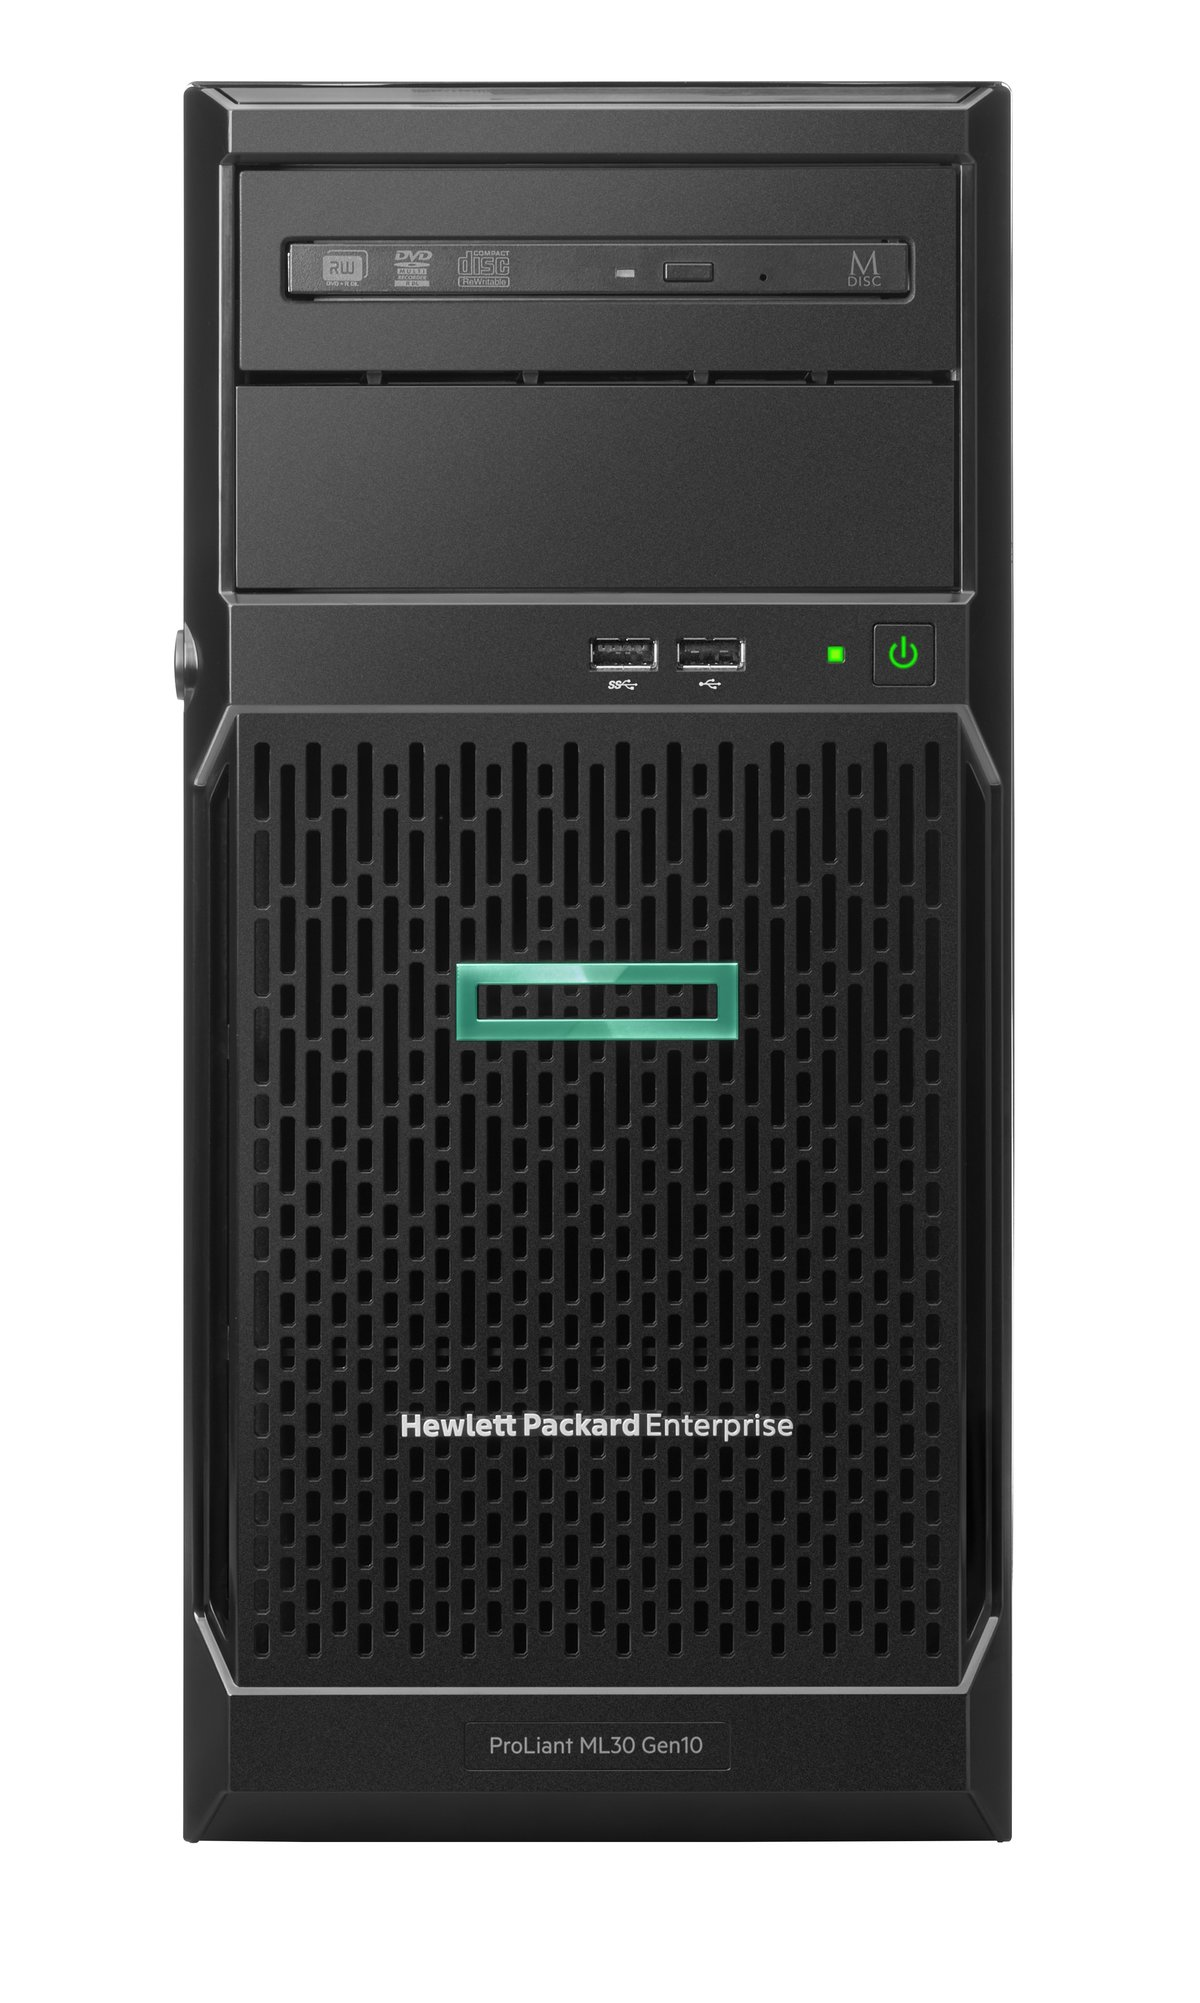 HP PROLIANT ML350 G4 BASE SYSTEM DEVICE WINDOWS 10 DOWNLOAD DRIVER